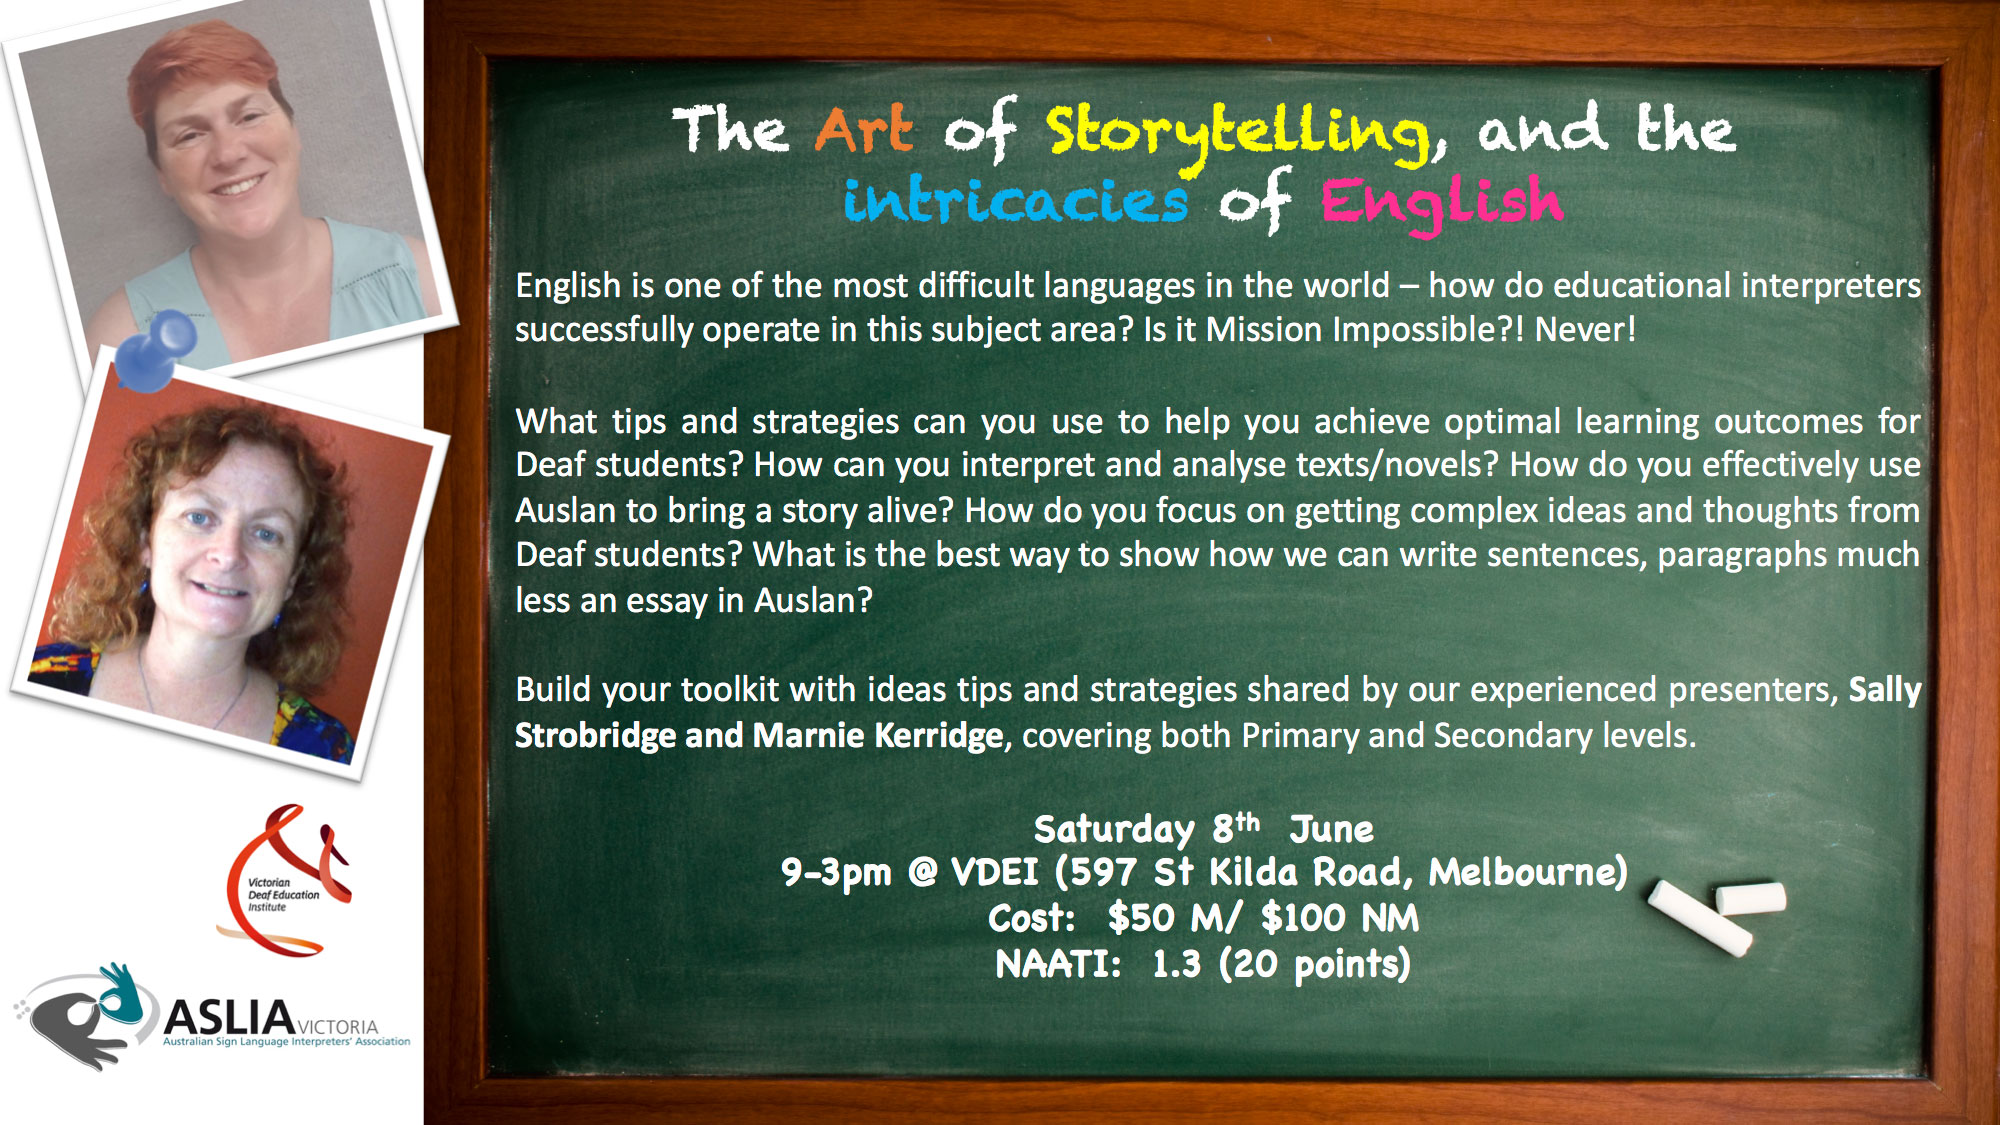 The Art of Storytelling, and the intricacies of English